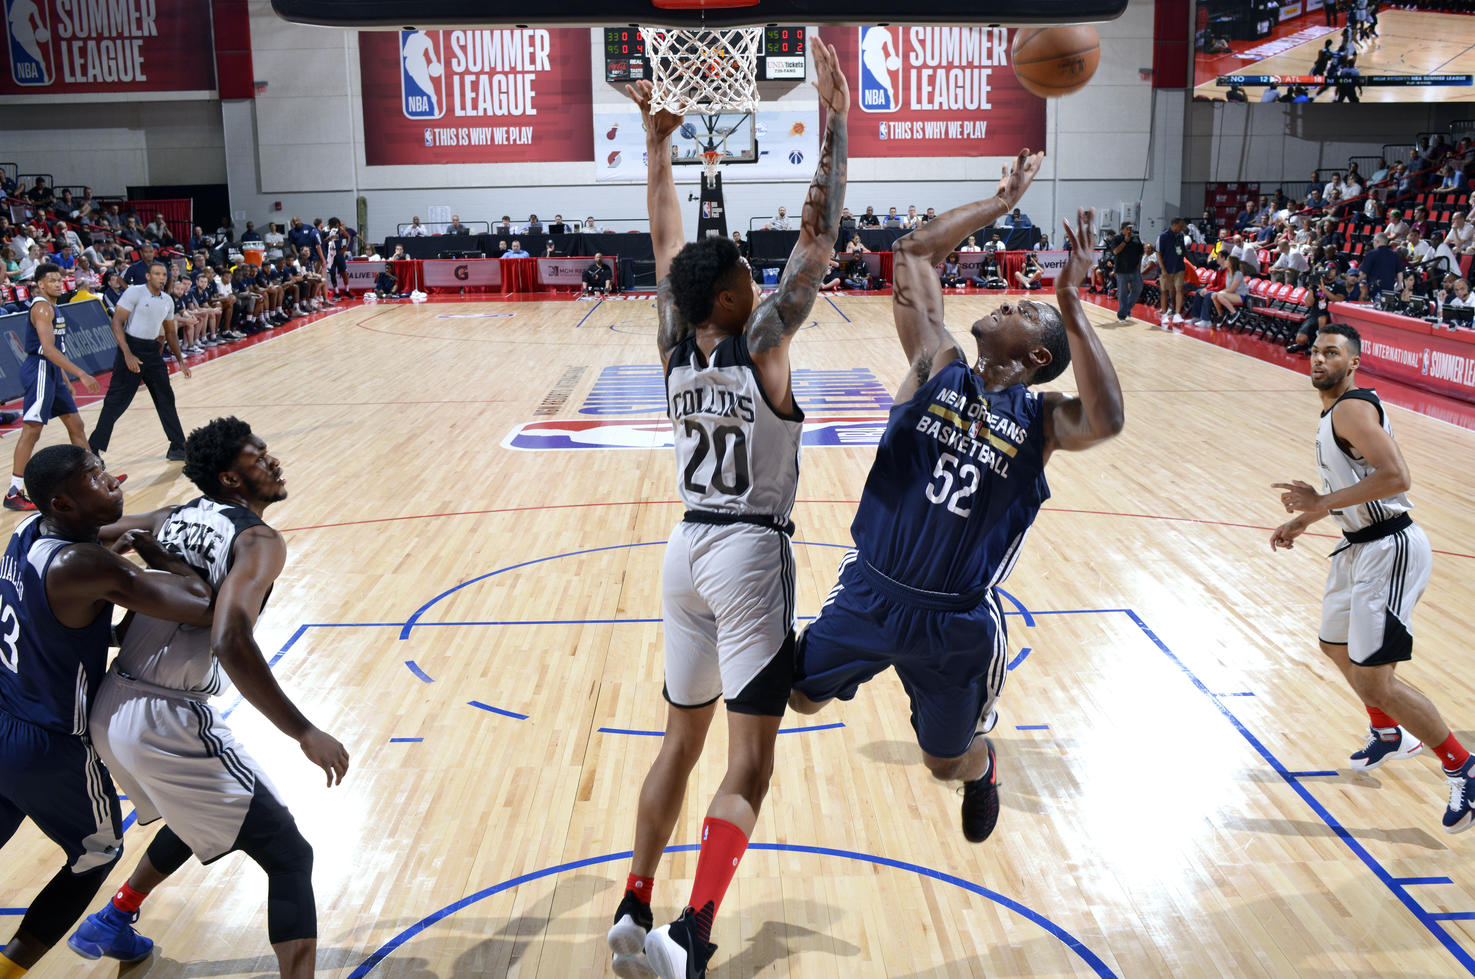 2017 Las Vegas Summer League - Atlanta Hawks v New Orleans Pelicans